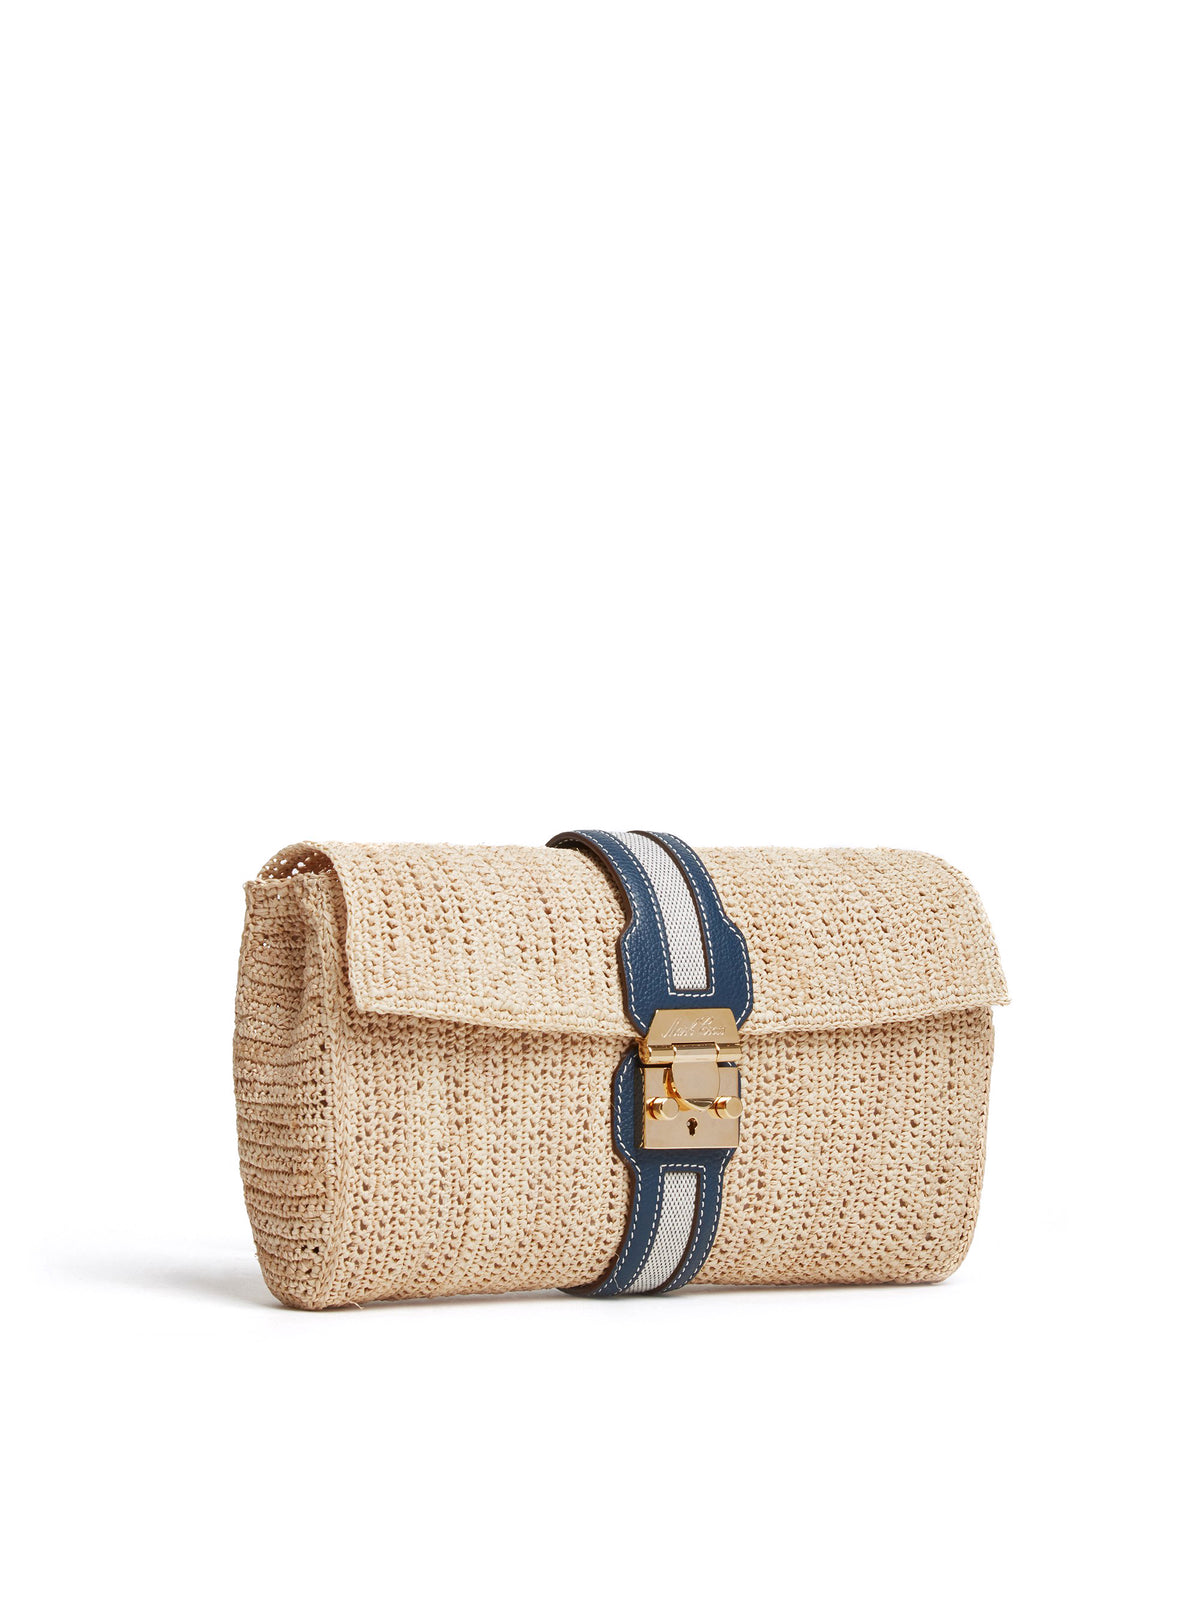 Mark Cross Sylvette Raffia & Leather Clutch Tumbled Grain Navy / Birdseye / Natural Raffia Side